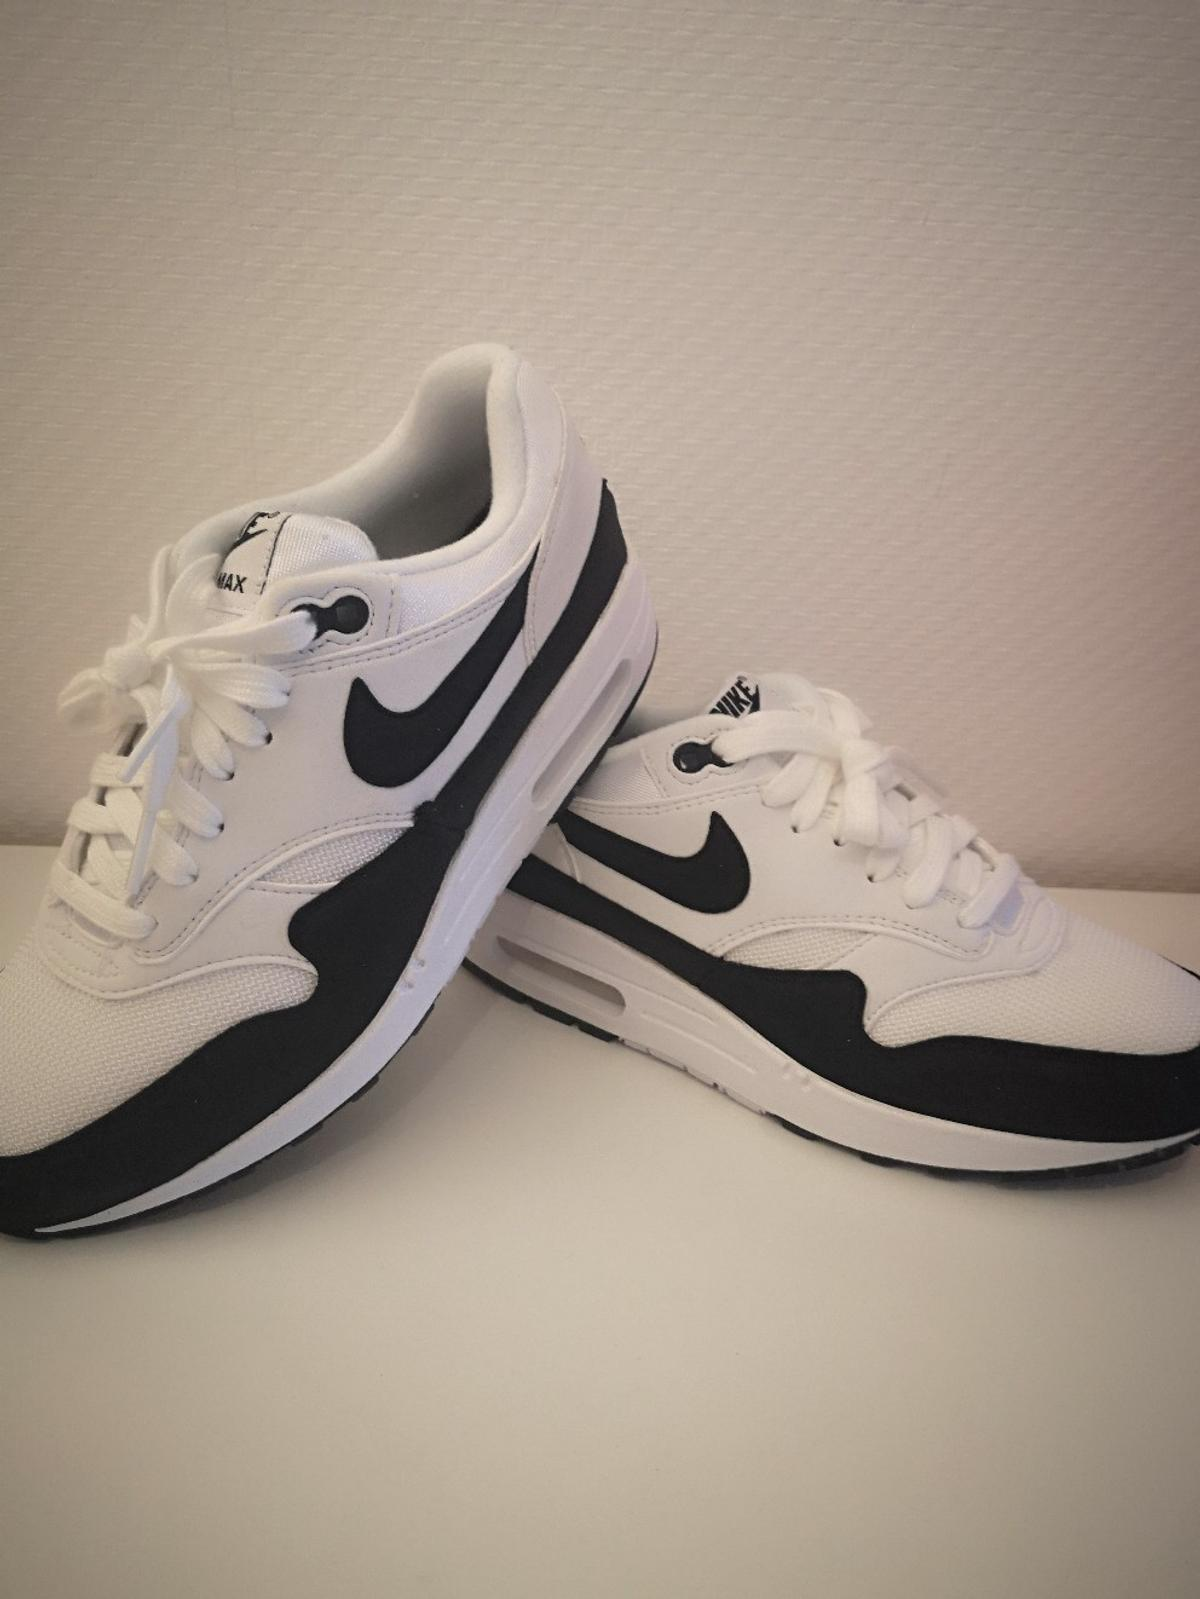 Nike Air max 1 Damen Sneakers Neu Größe 40 in 64560